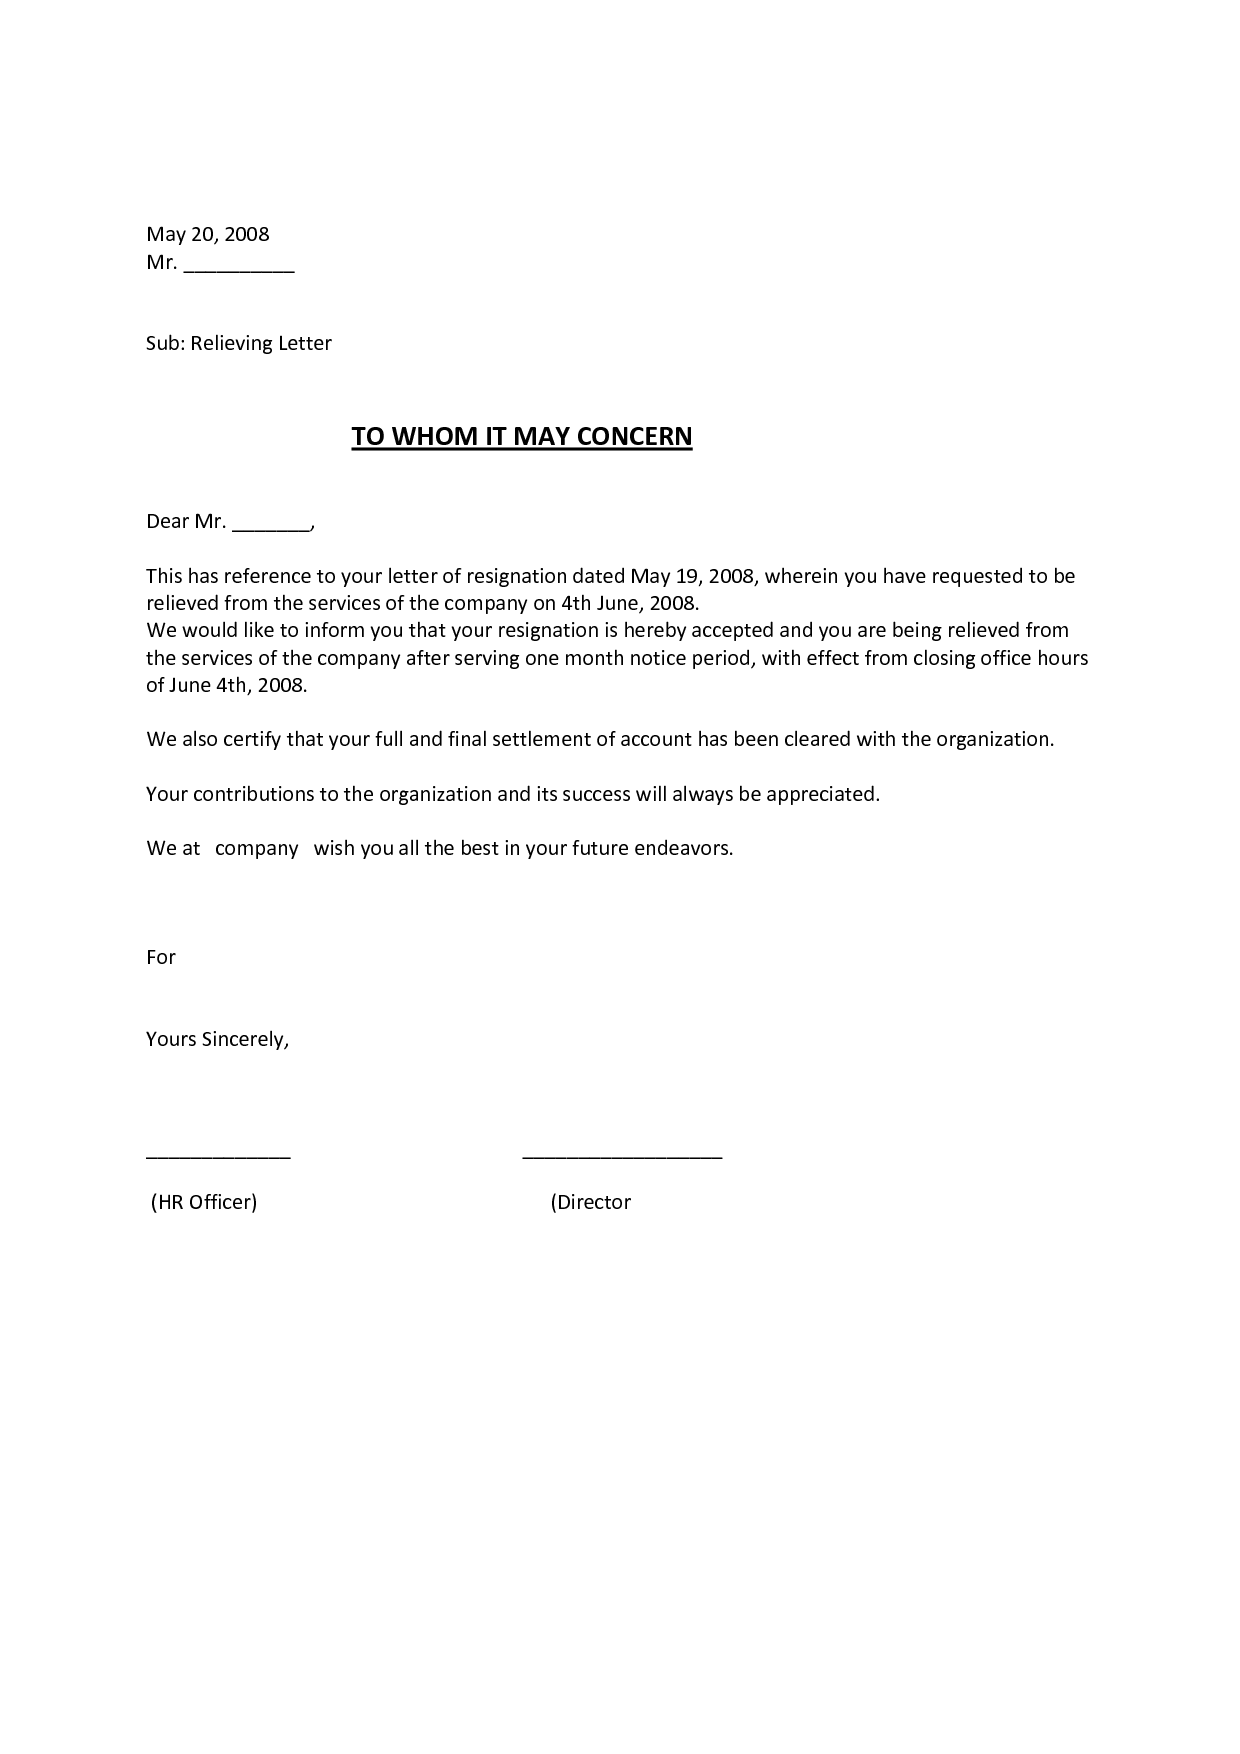 Full And Final Settlement Of Employee Letter Format >> Relieving Letter Format For Employee Free Download | HR Letter Formats | Lettering, Resume ...